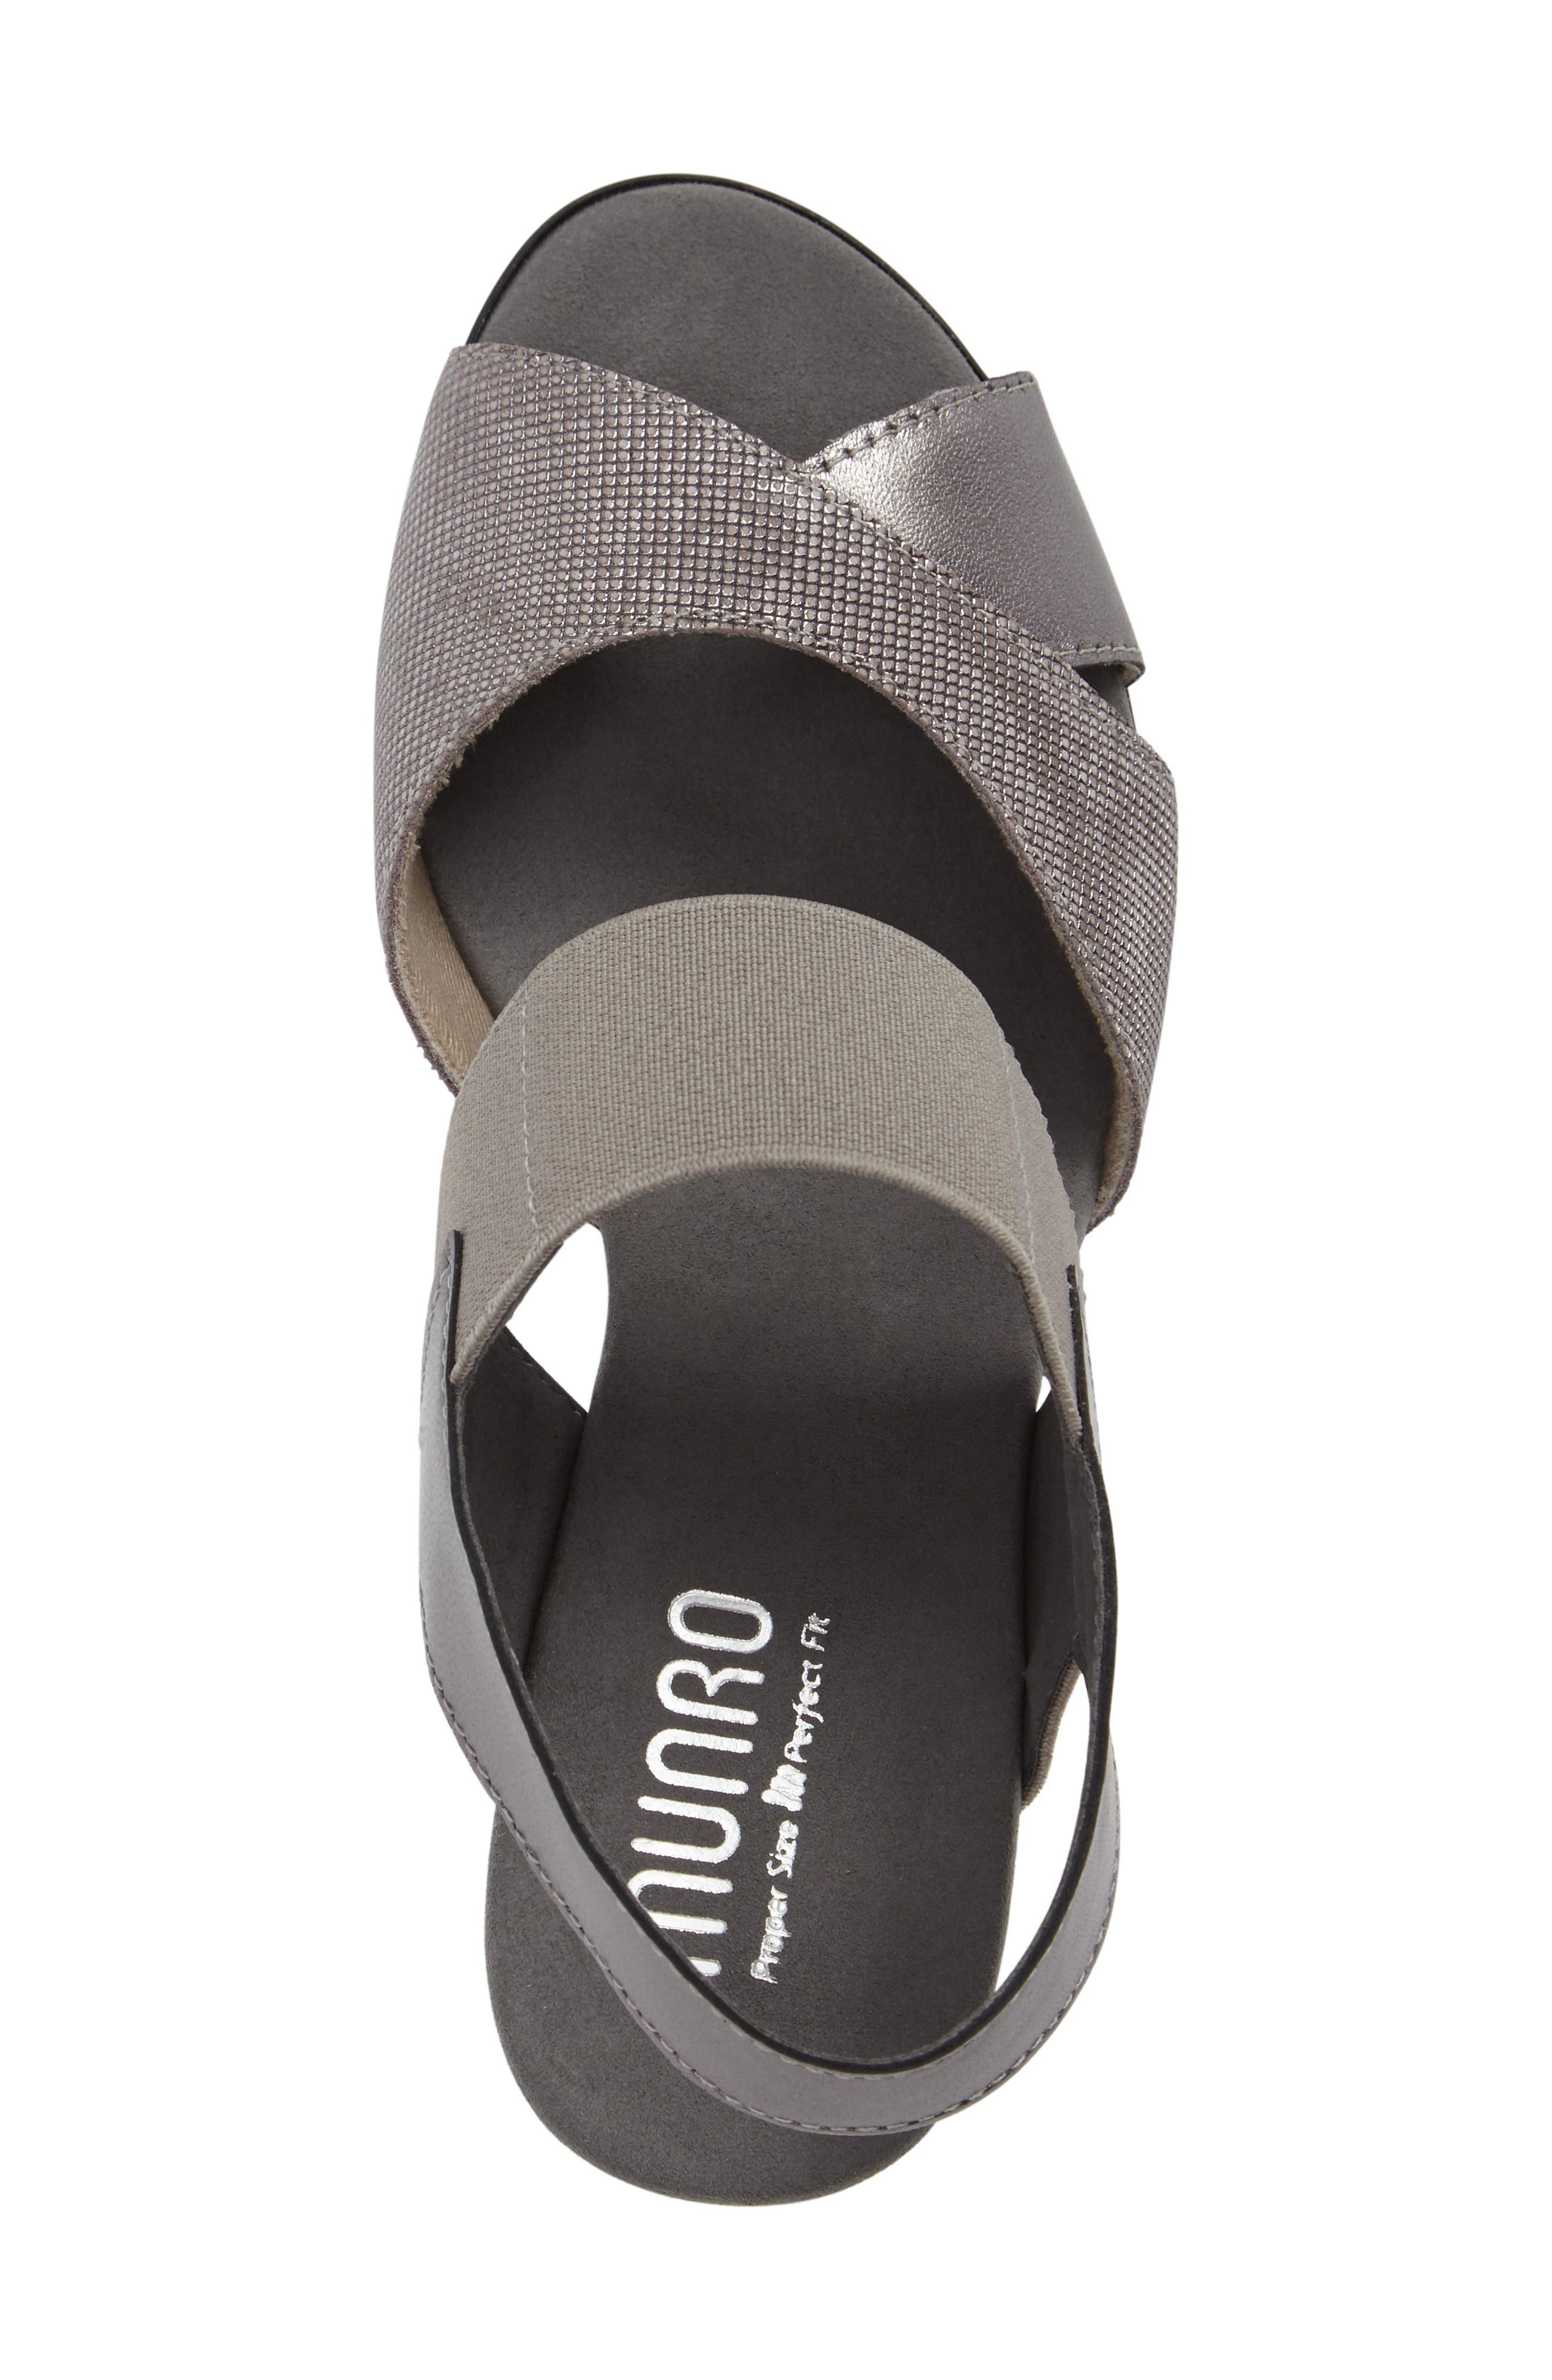 Darling Mixed Finish Slingback Sandal,                             Alternate thumbnail 5, color,                             Pewter Leather